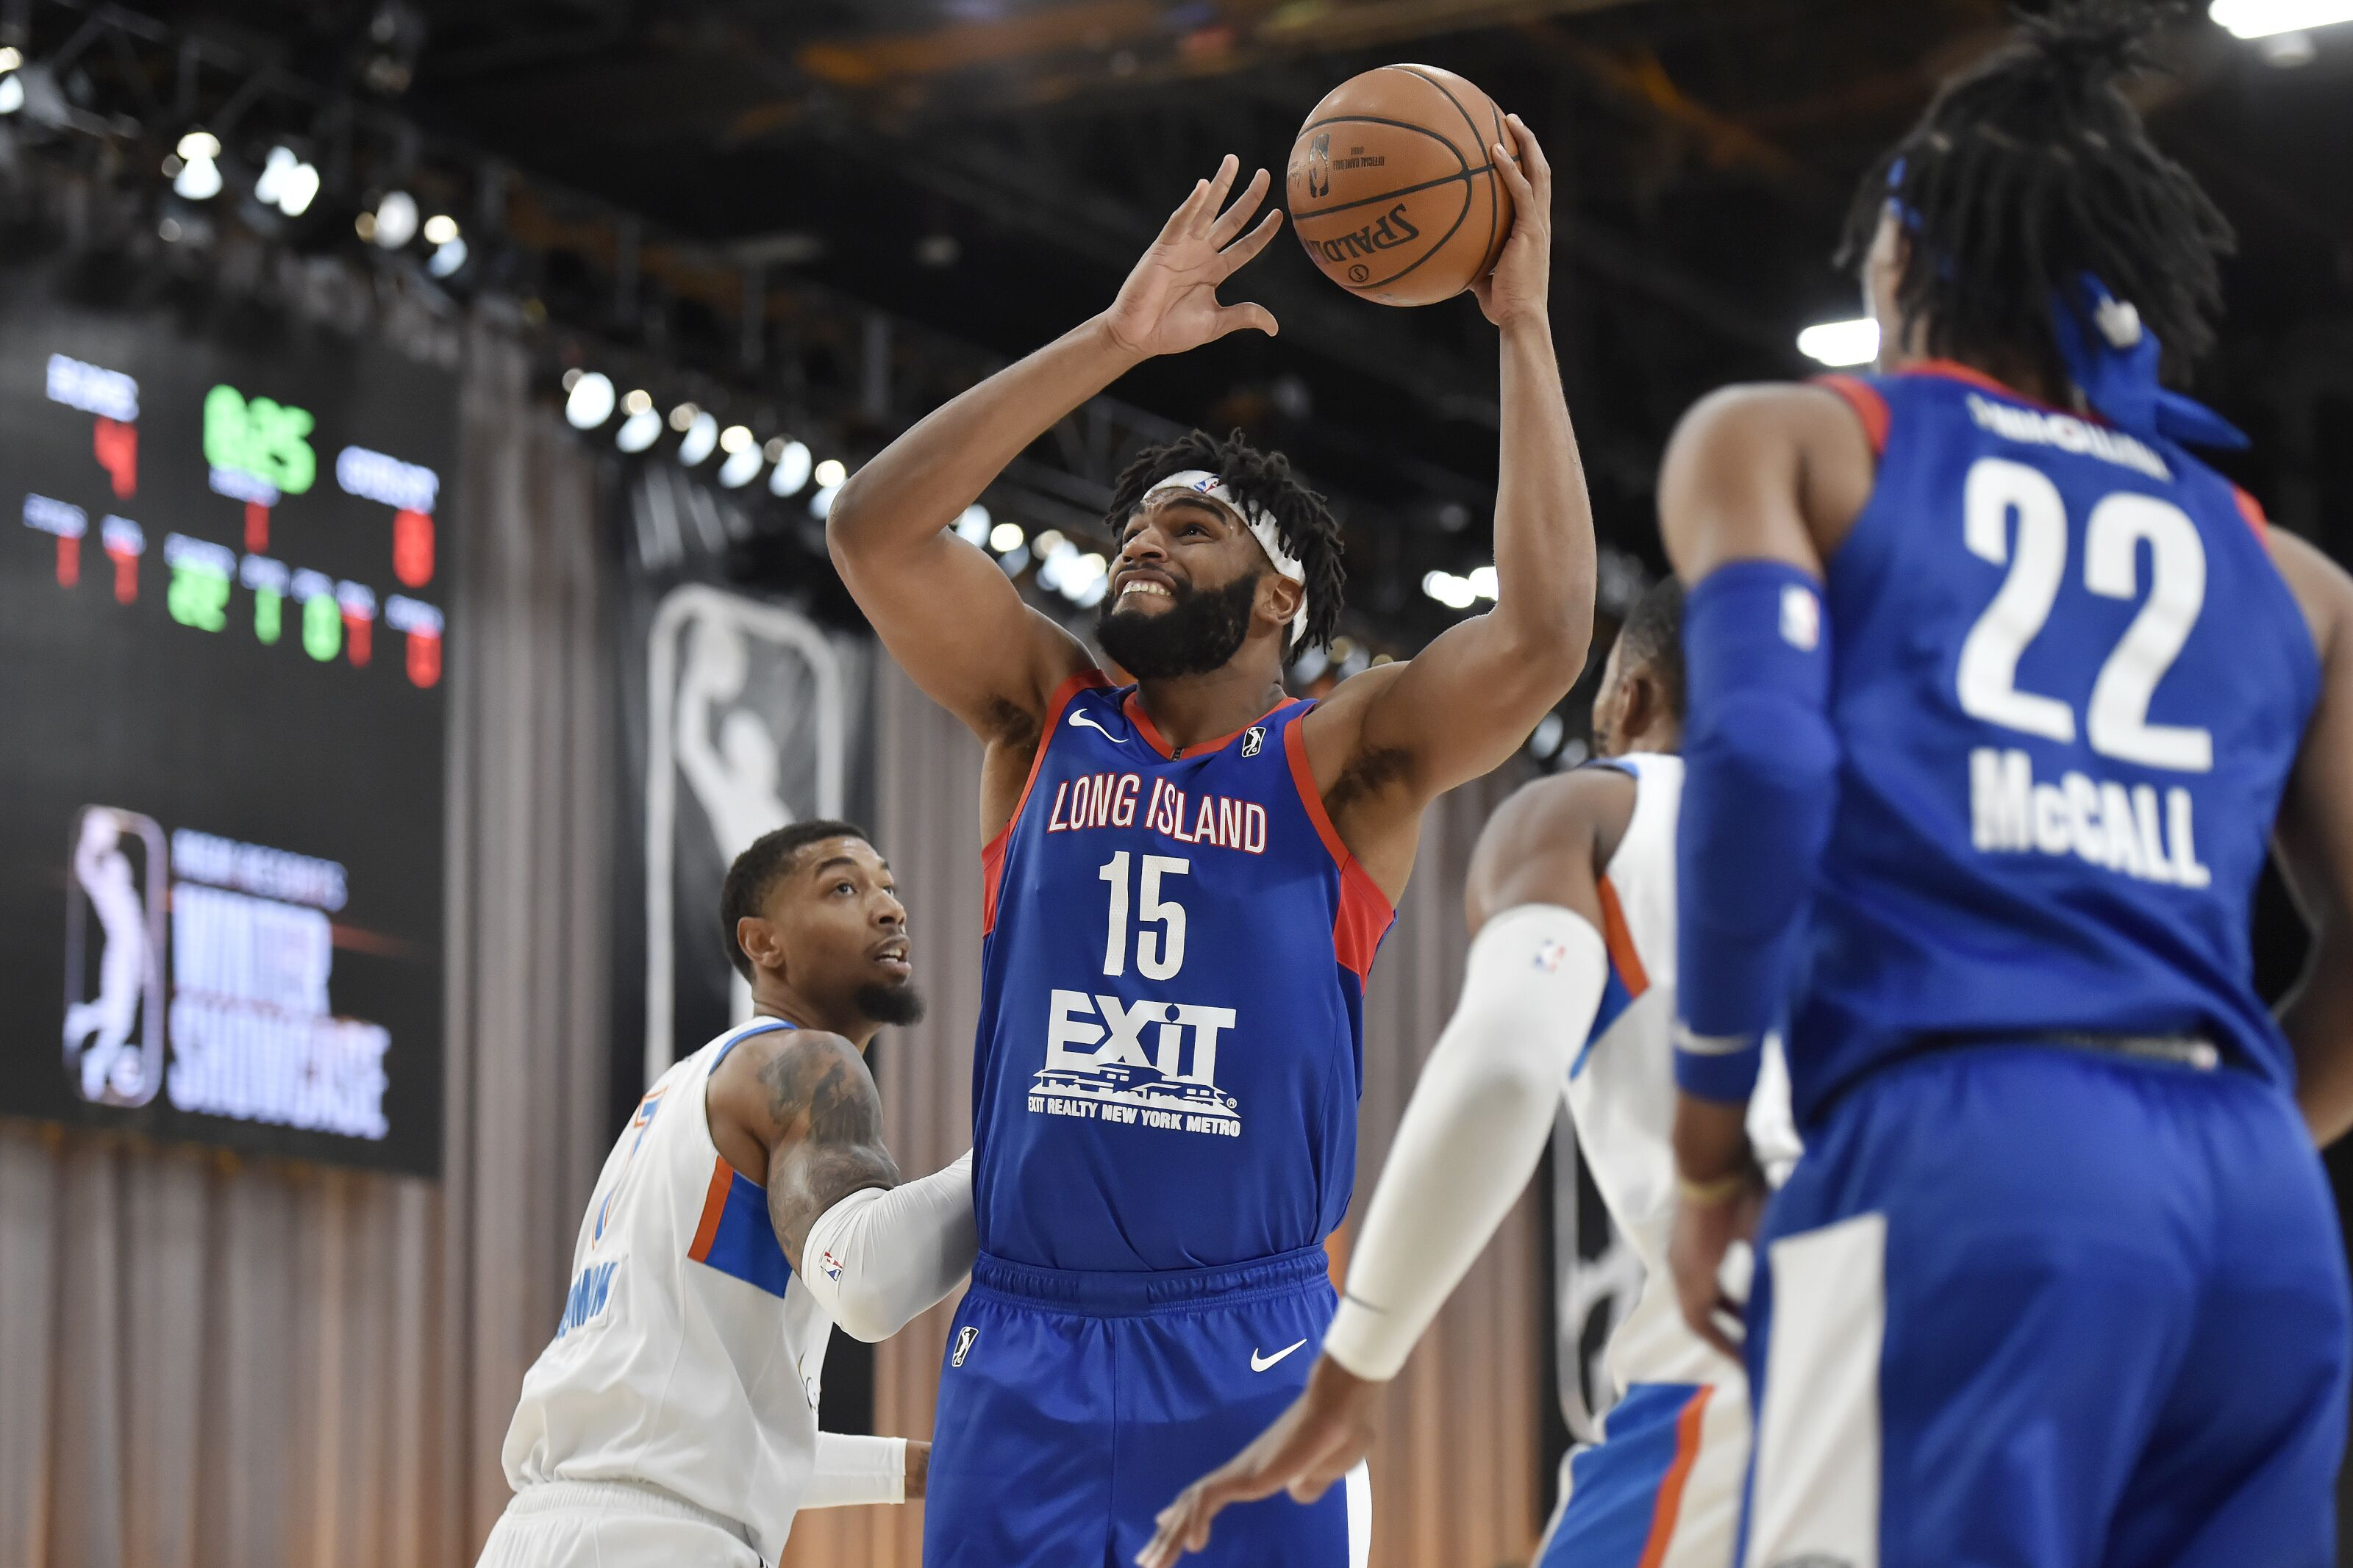 165ac225fb4 Long Island Nets never recover from slow start in loss to Raptors 905